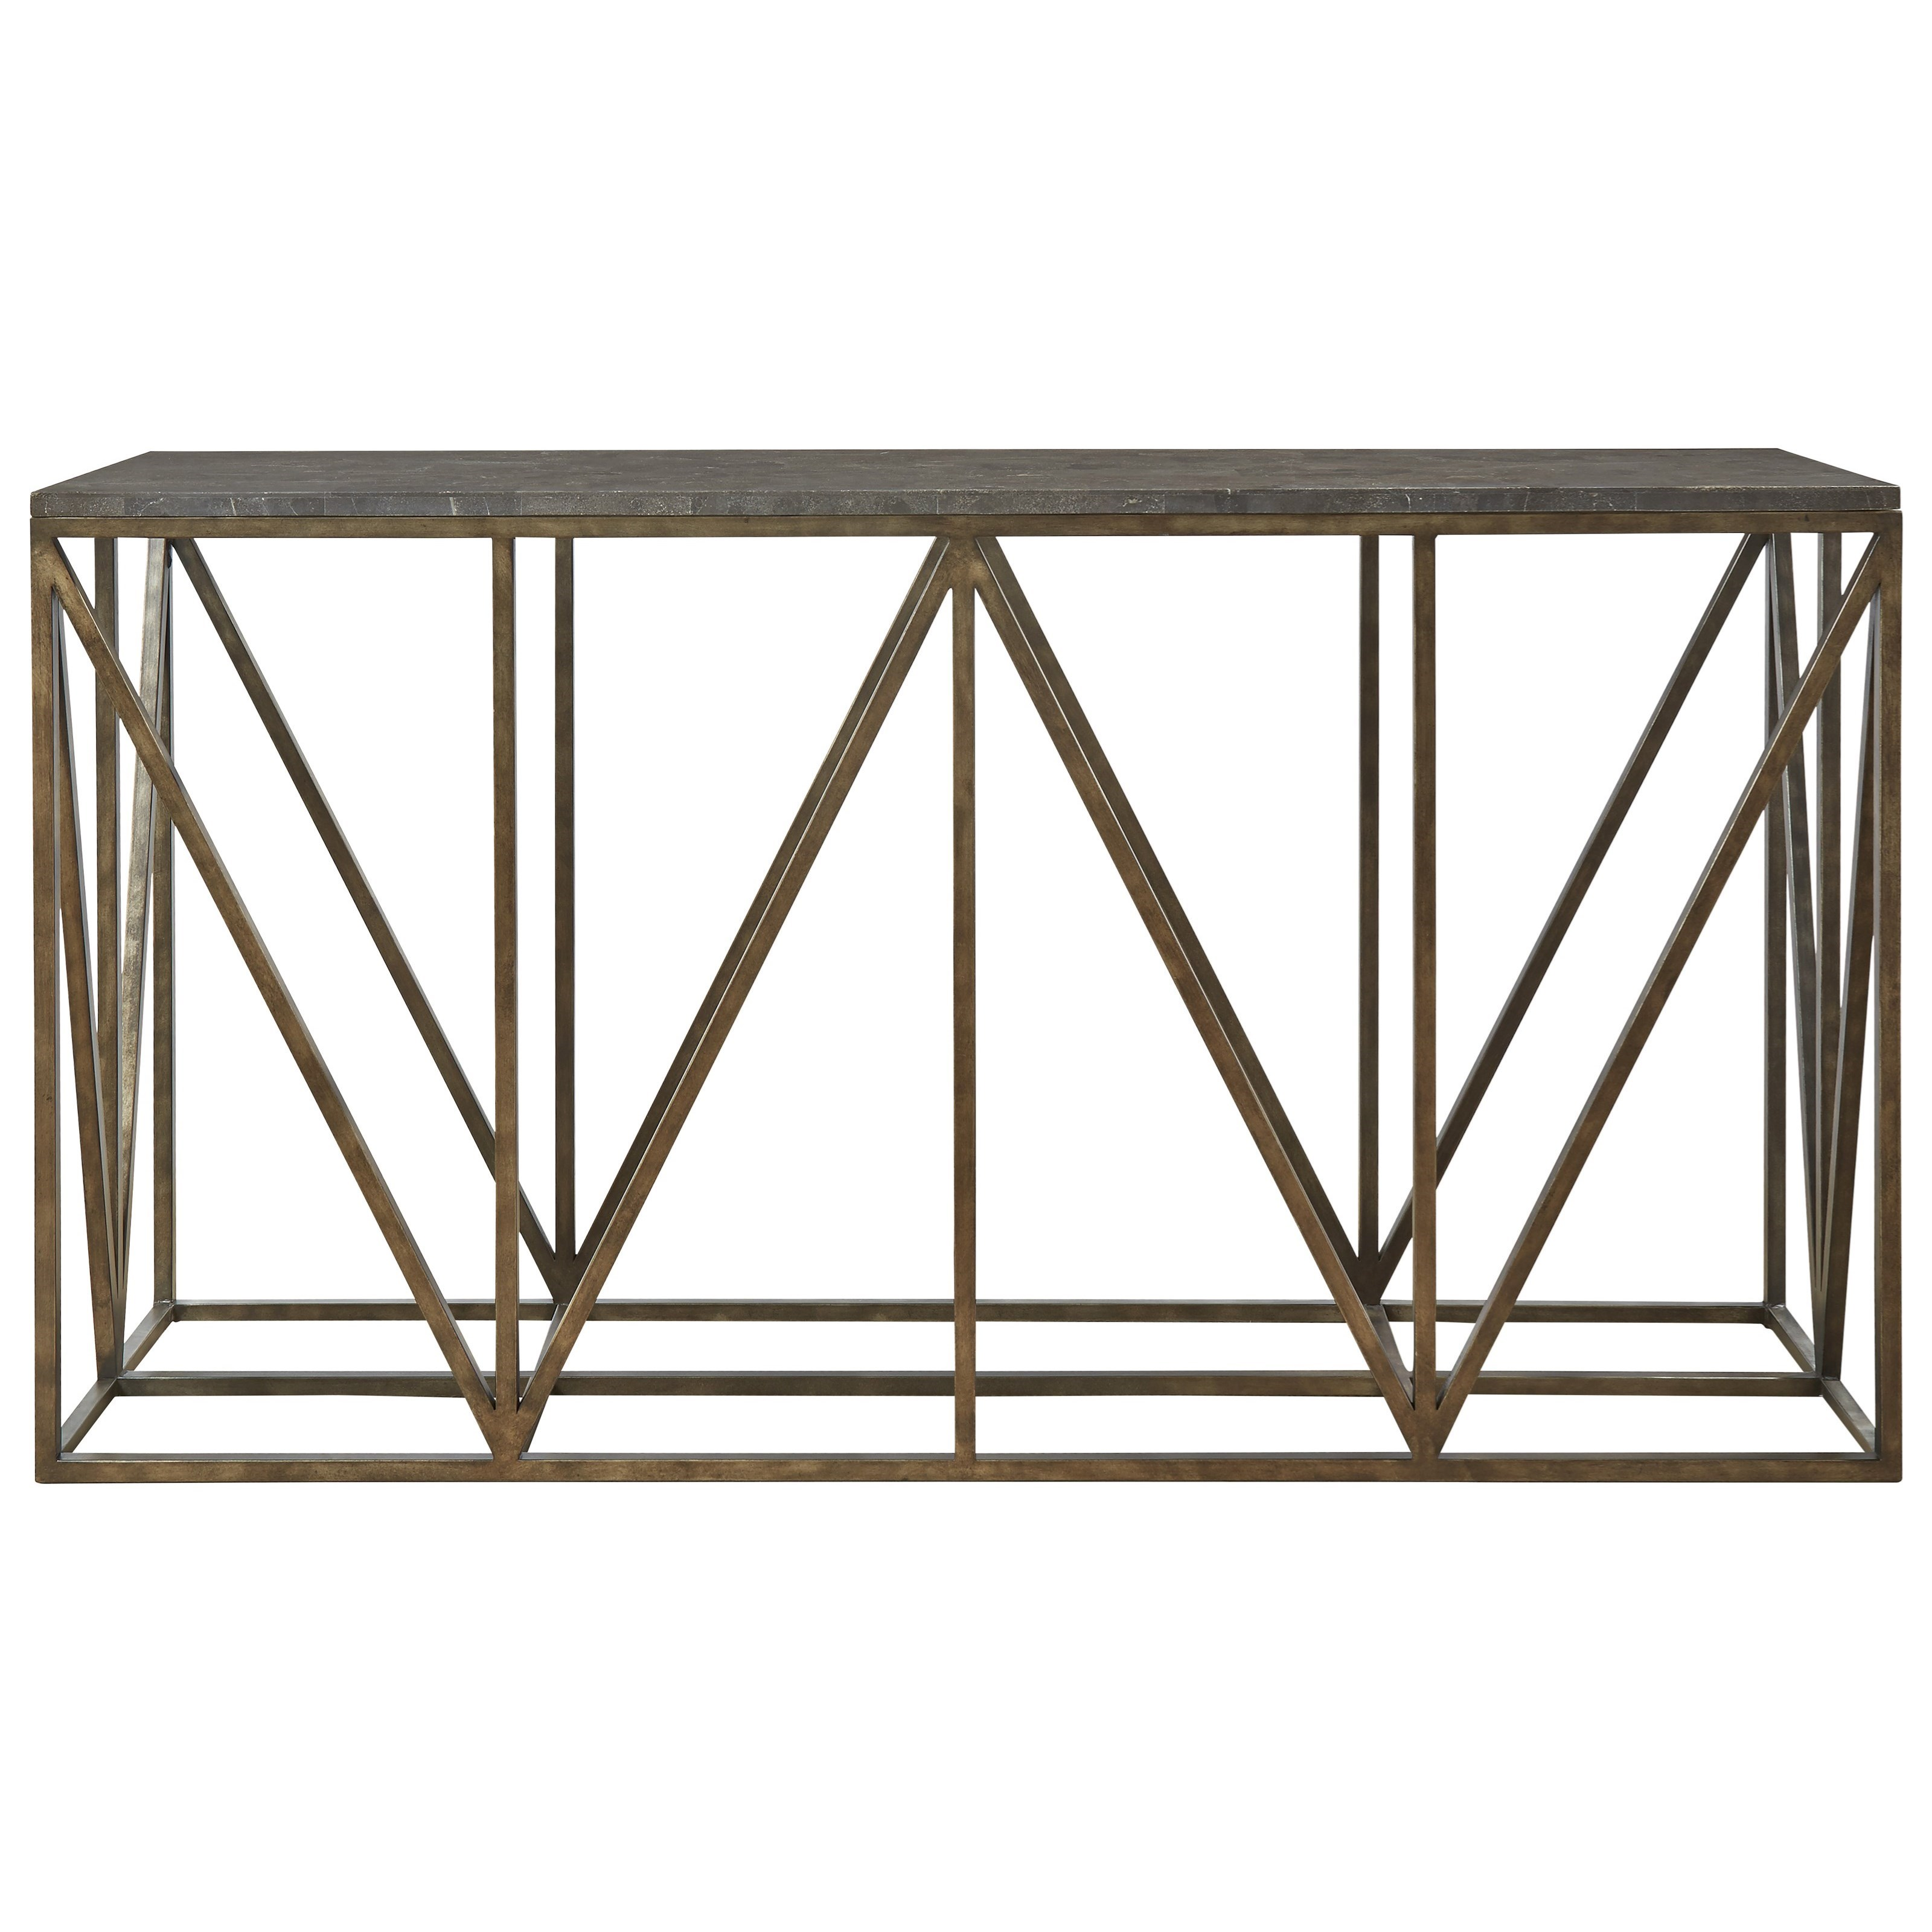 Universal Authenticity Truss Console Table - Item Number: 572803